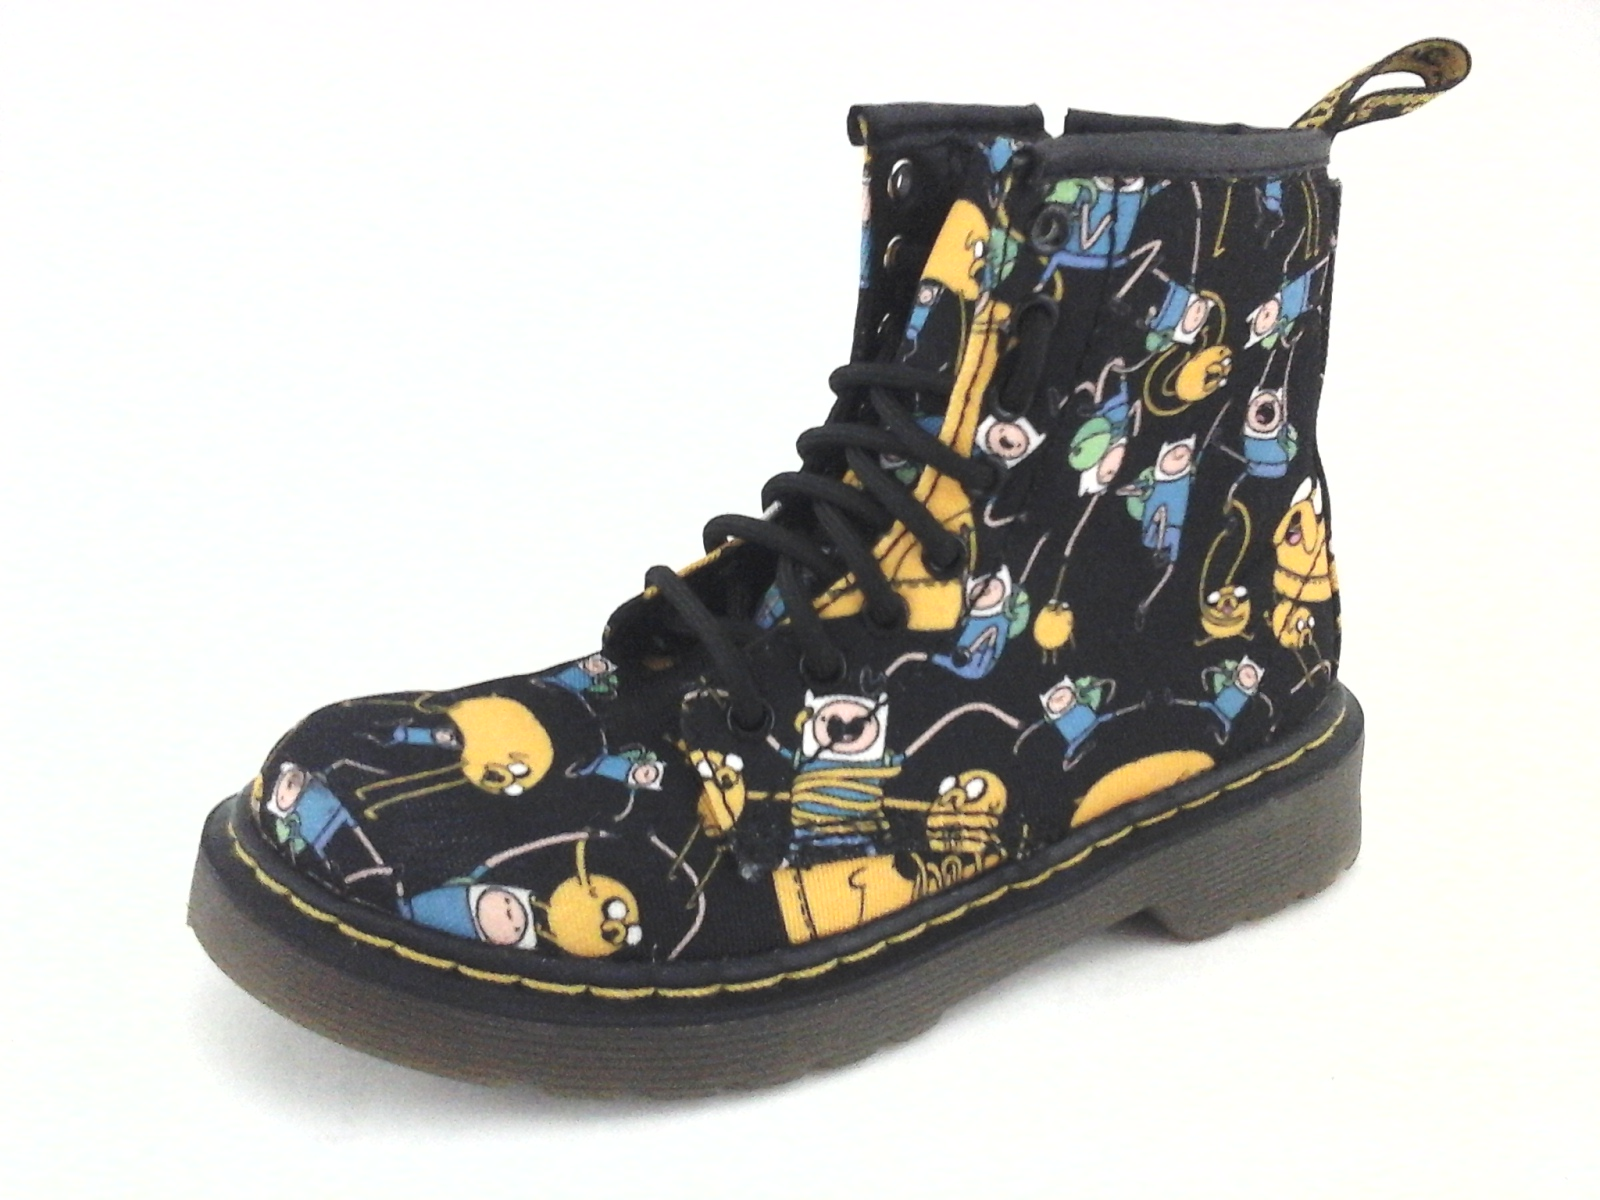 affordable price best website entire collection Details about DR MARTENS Delaney Combat Boots Adventure Time Black Jake  Boys Youth US 13 $149